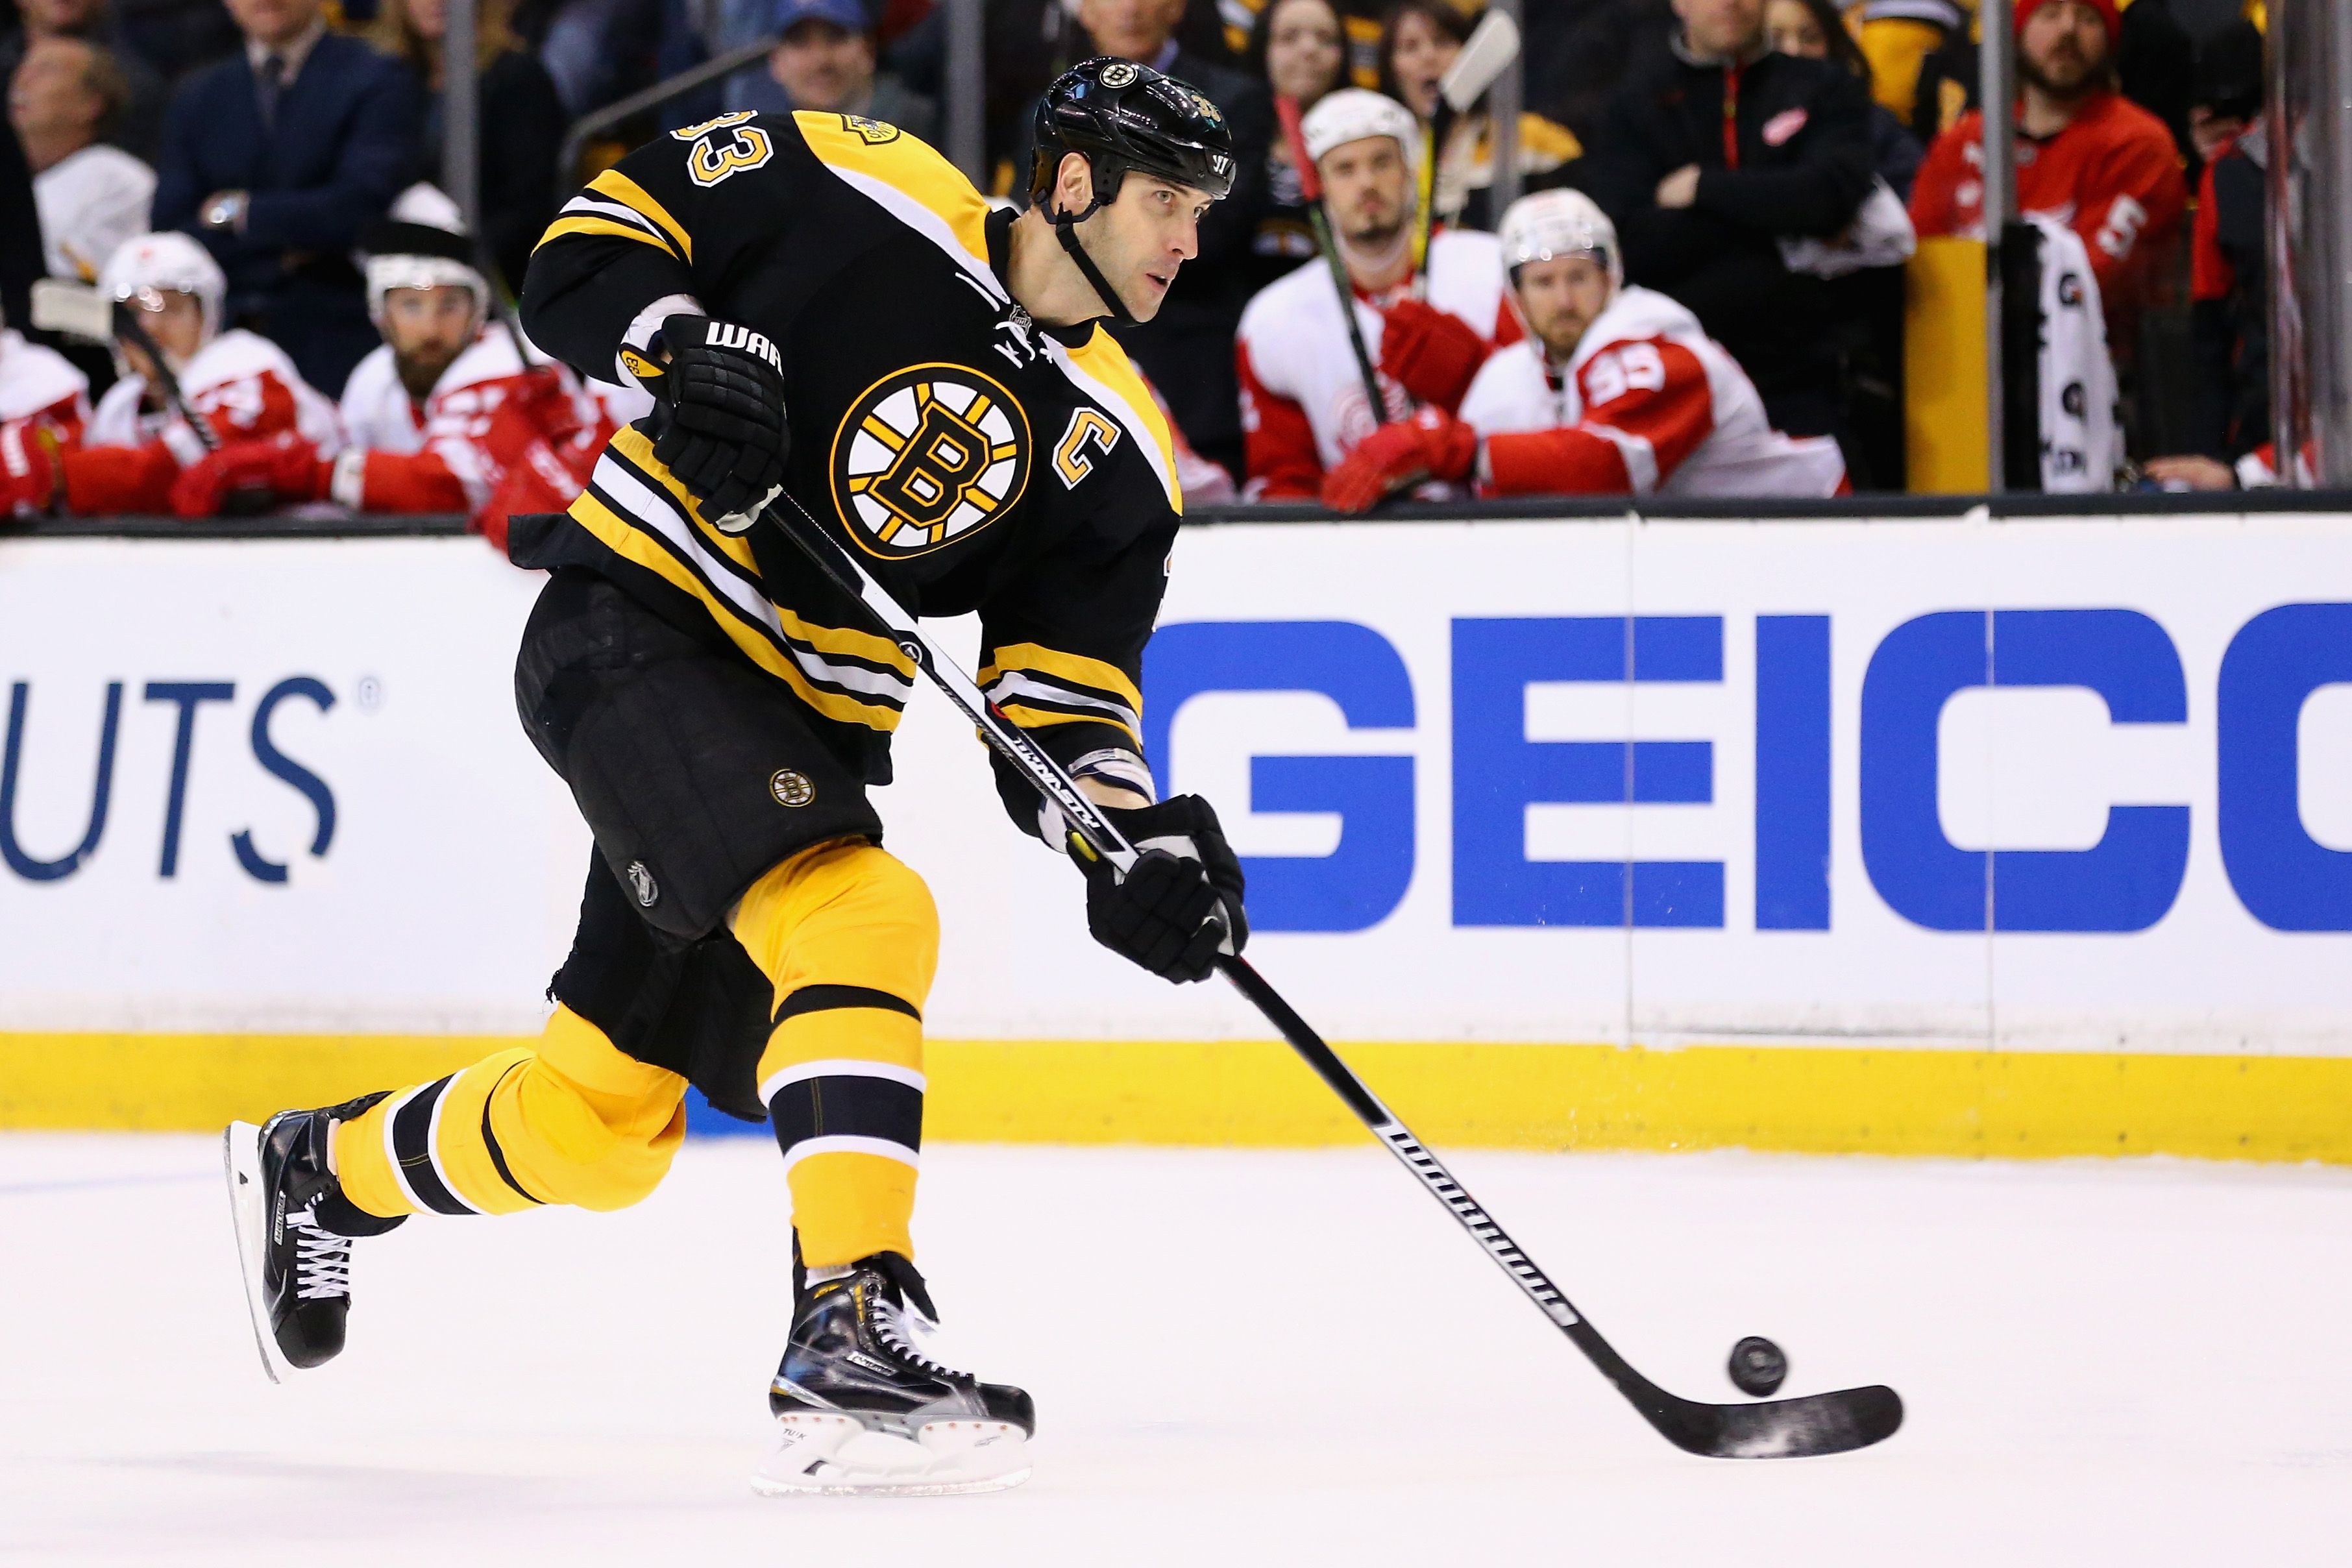 Bruins sign Marchand for 8 years, $49 million